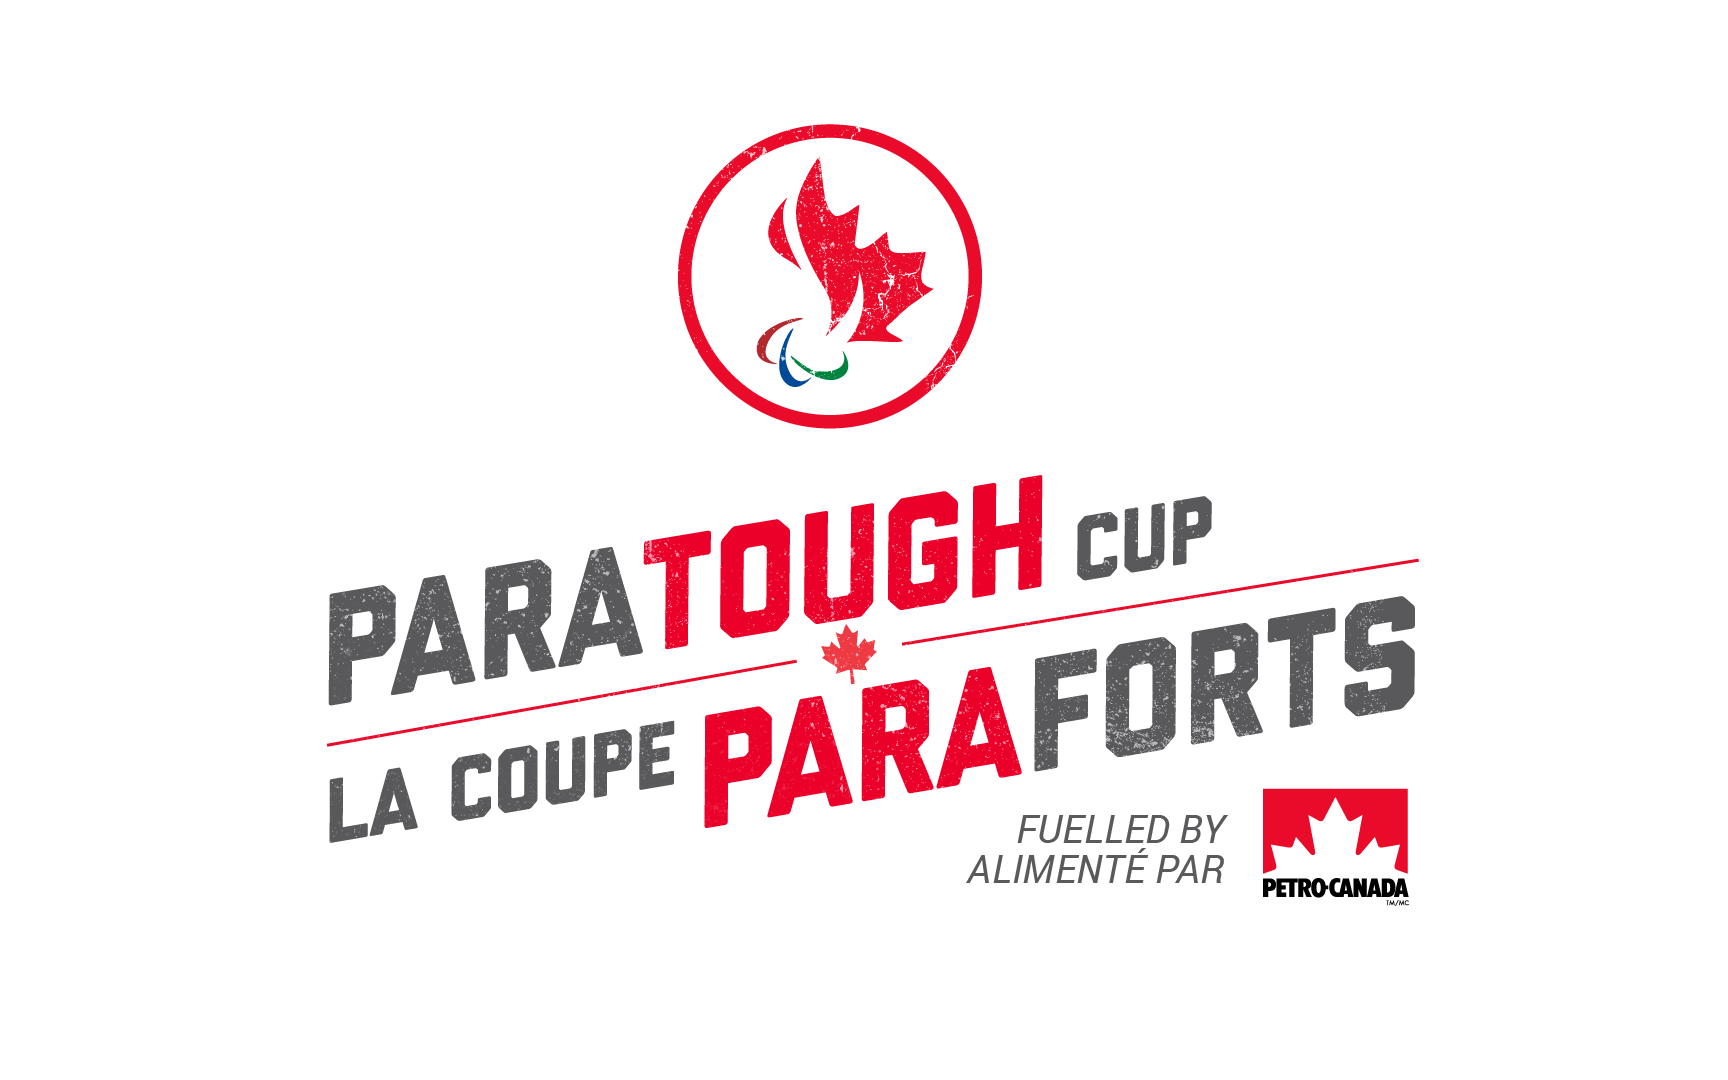 ParaTough Cup logo fuelled by petro-Canada